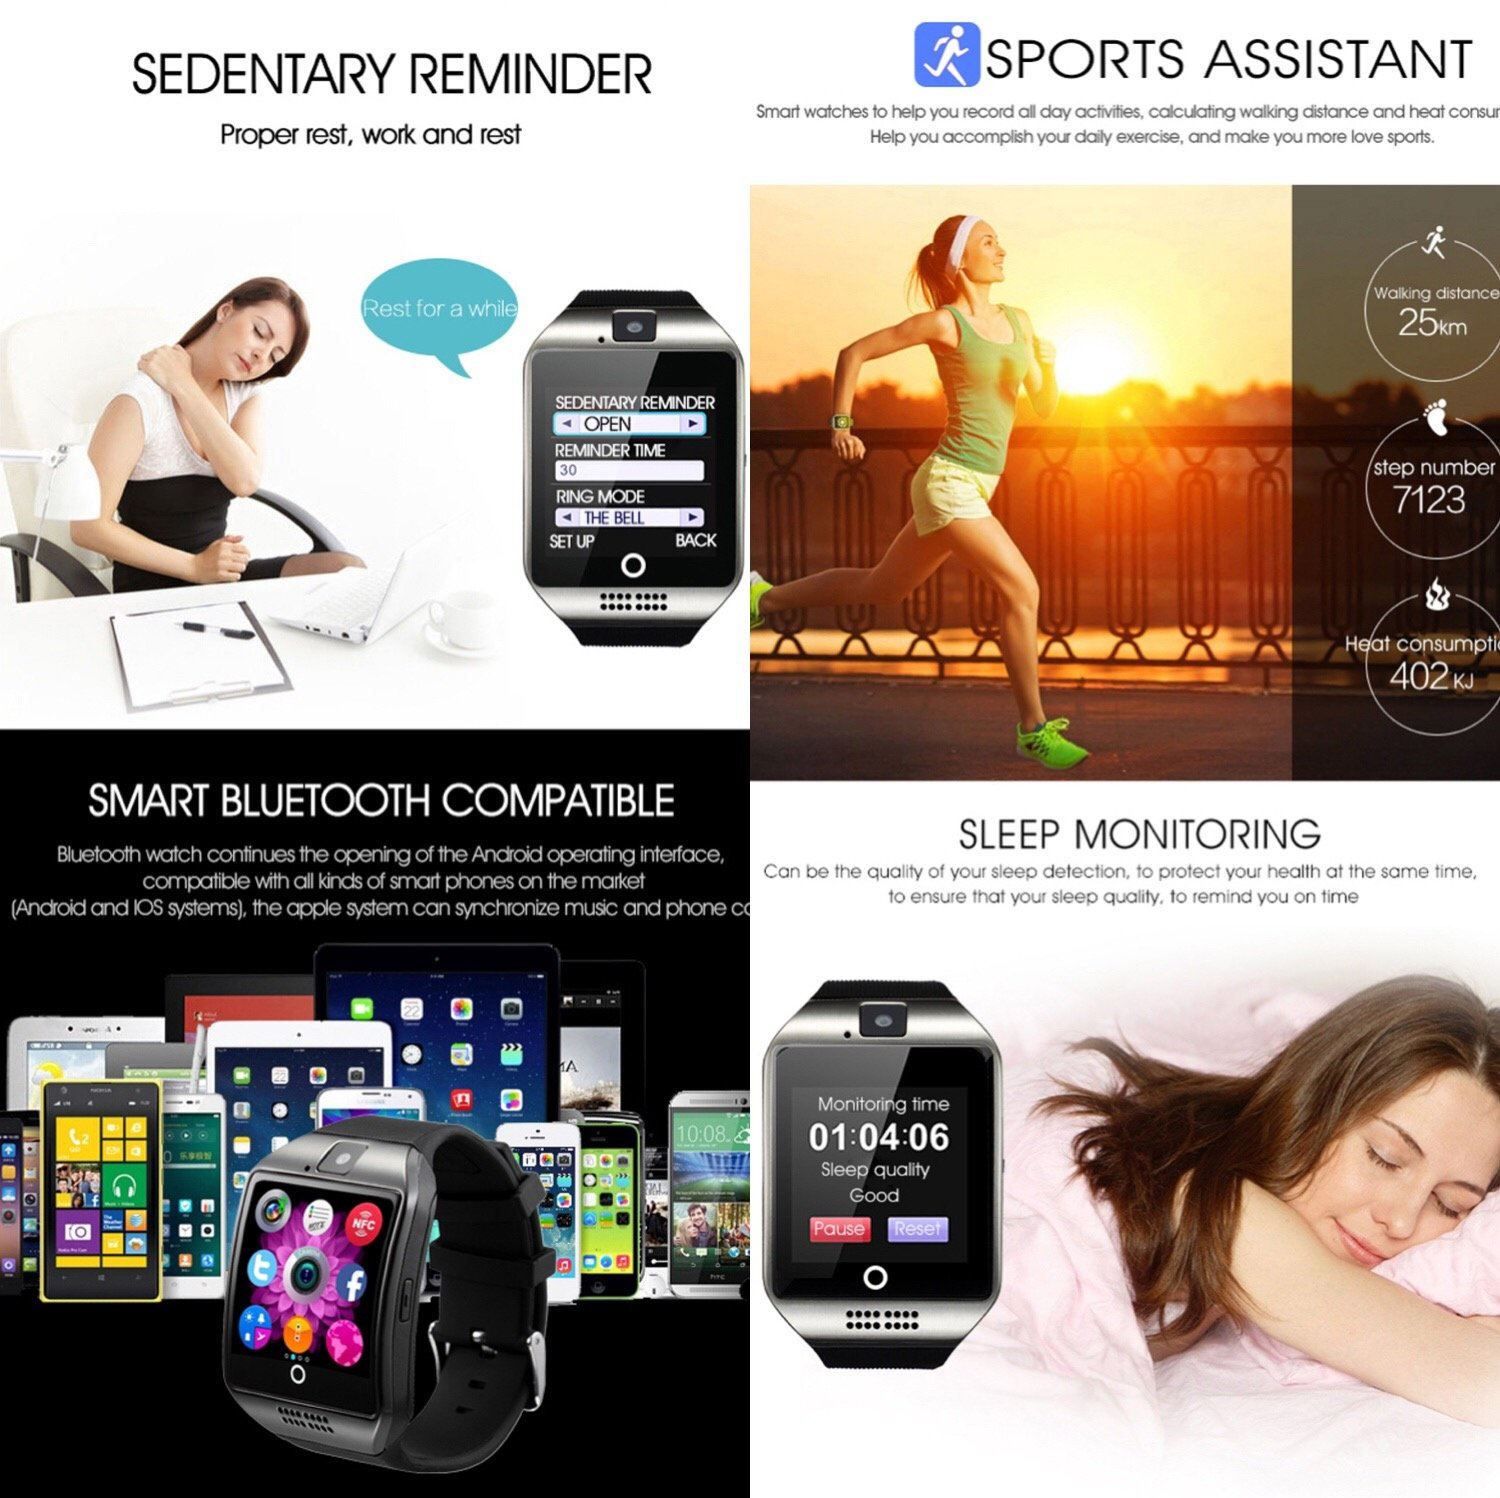 Amazon.com: ZRSJ Bluetooth Smart Watch Q18 Touch Screen with Camera SIM/TF Card Slot Watches for Android iOS Samsung Motorola Men Women Kids (Gold): Cell ...